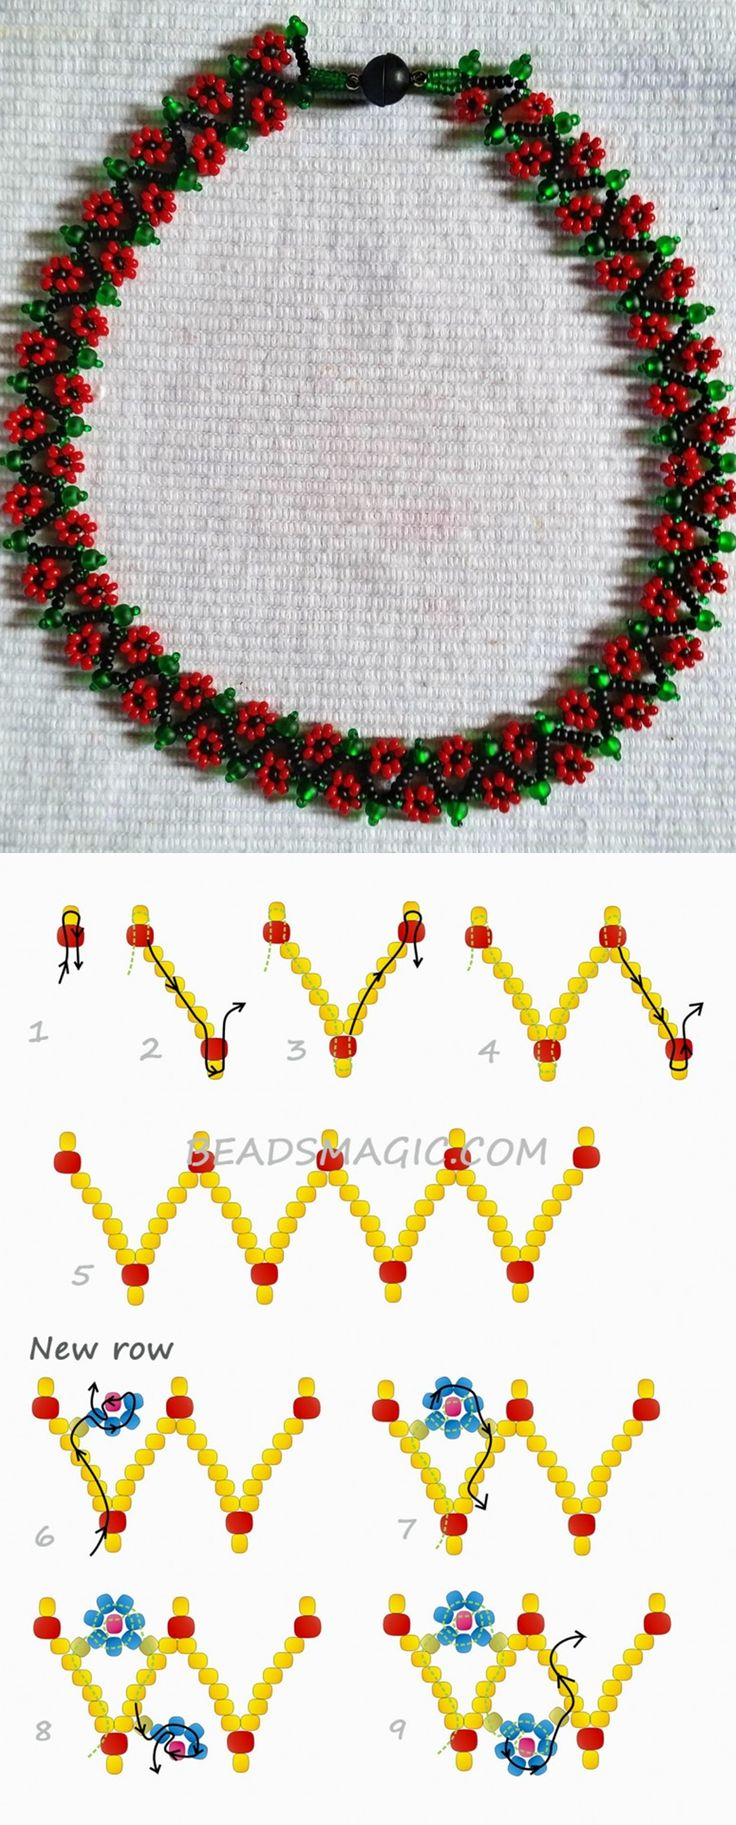 beading images bisuteria jewelry on pinterest balls bb andaira best tutorials beads seed bead netted